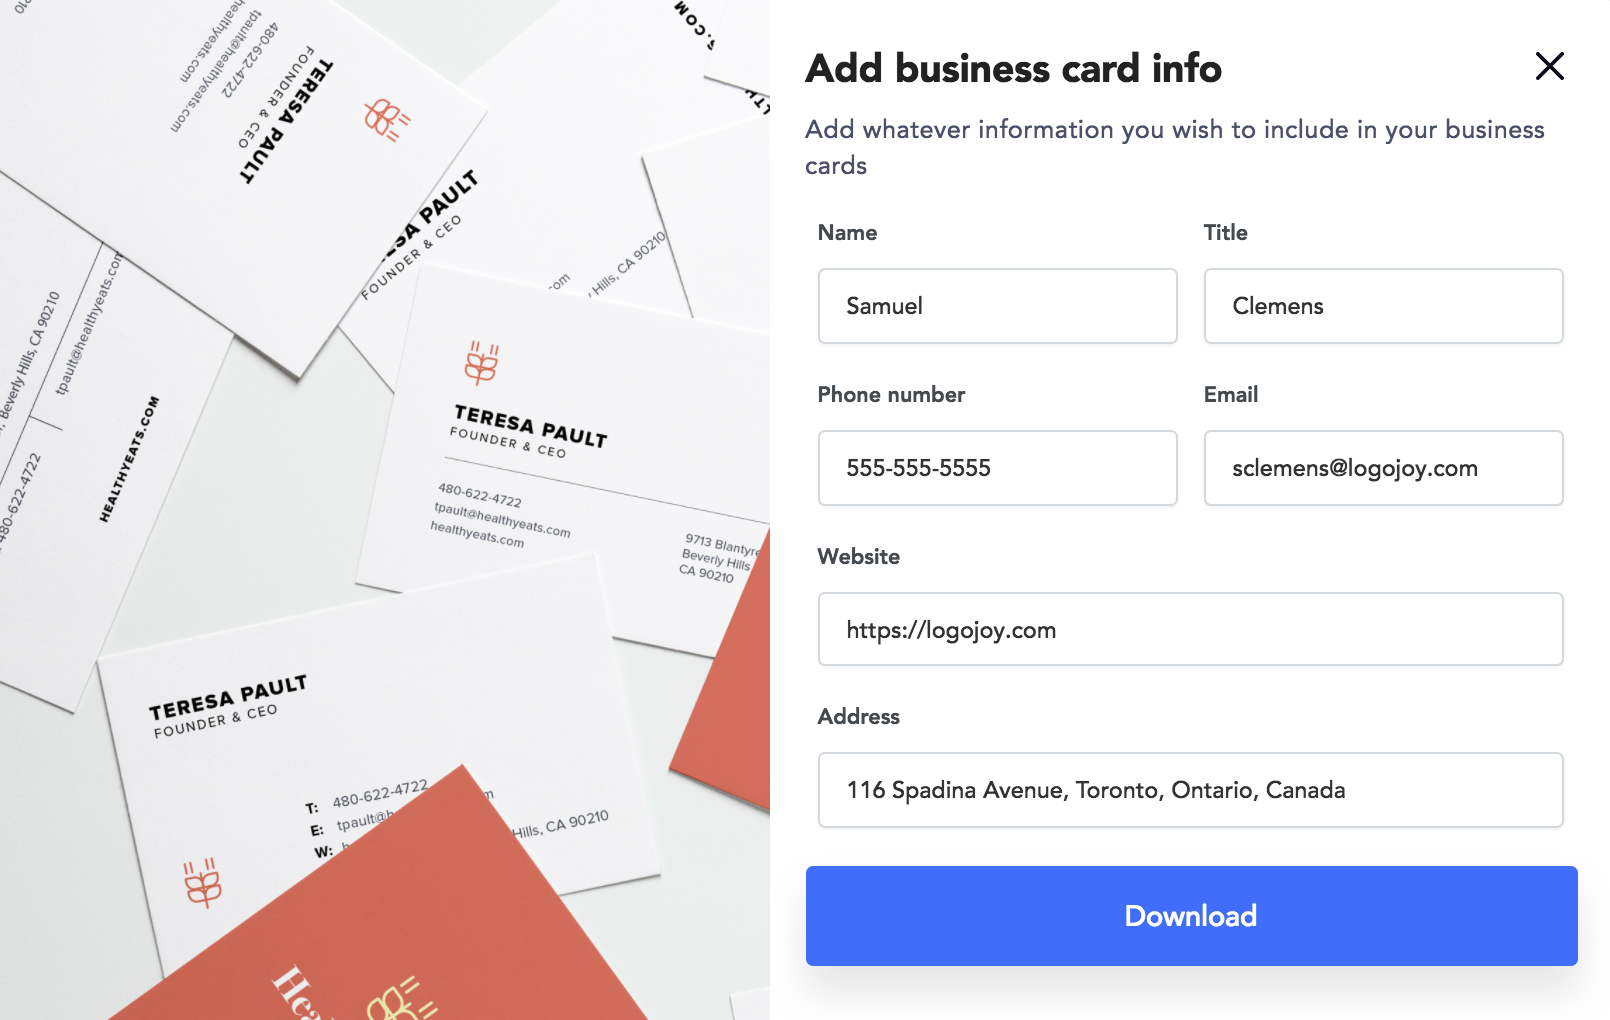 How do i download my business card designs logojoy help center clicking set up under the business cards header will take you back your logo editor where a modal will pop up prompting you to enter your business colourmoves